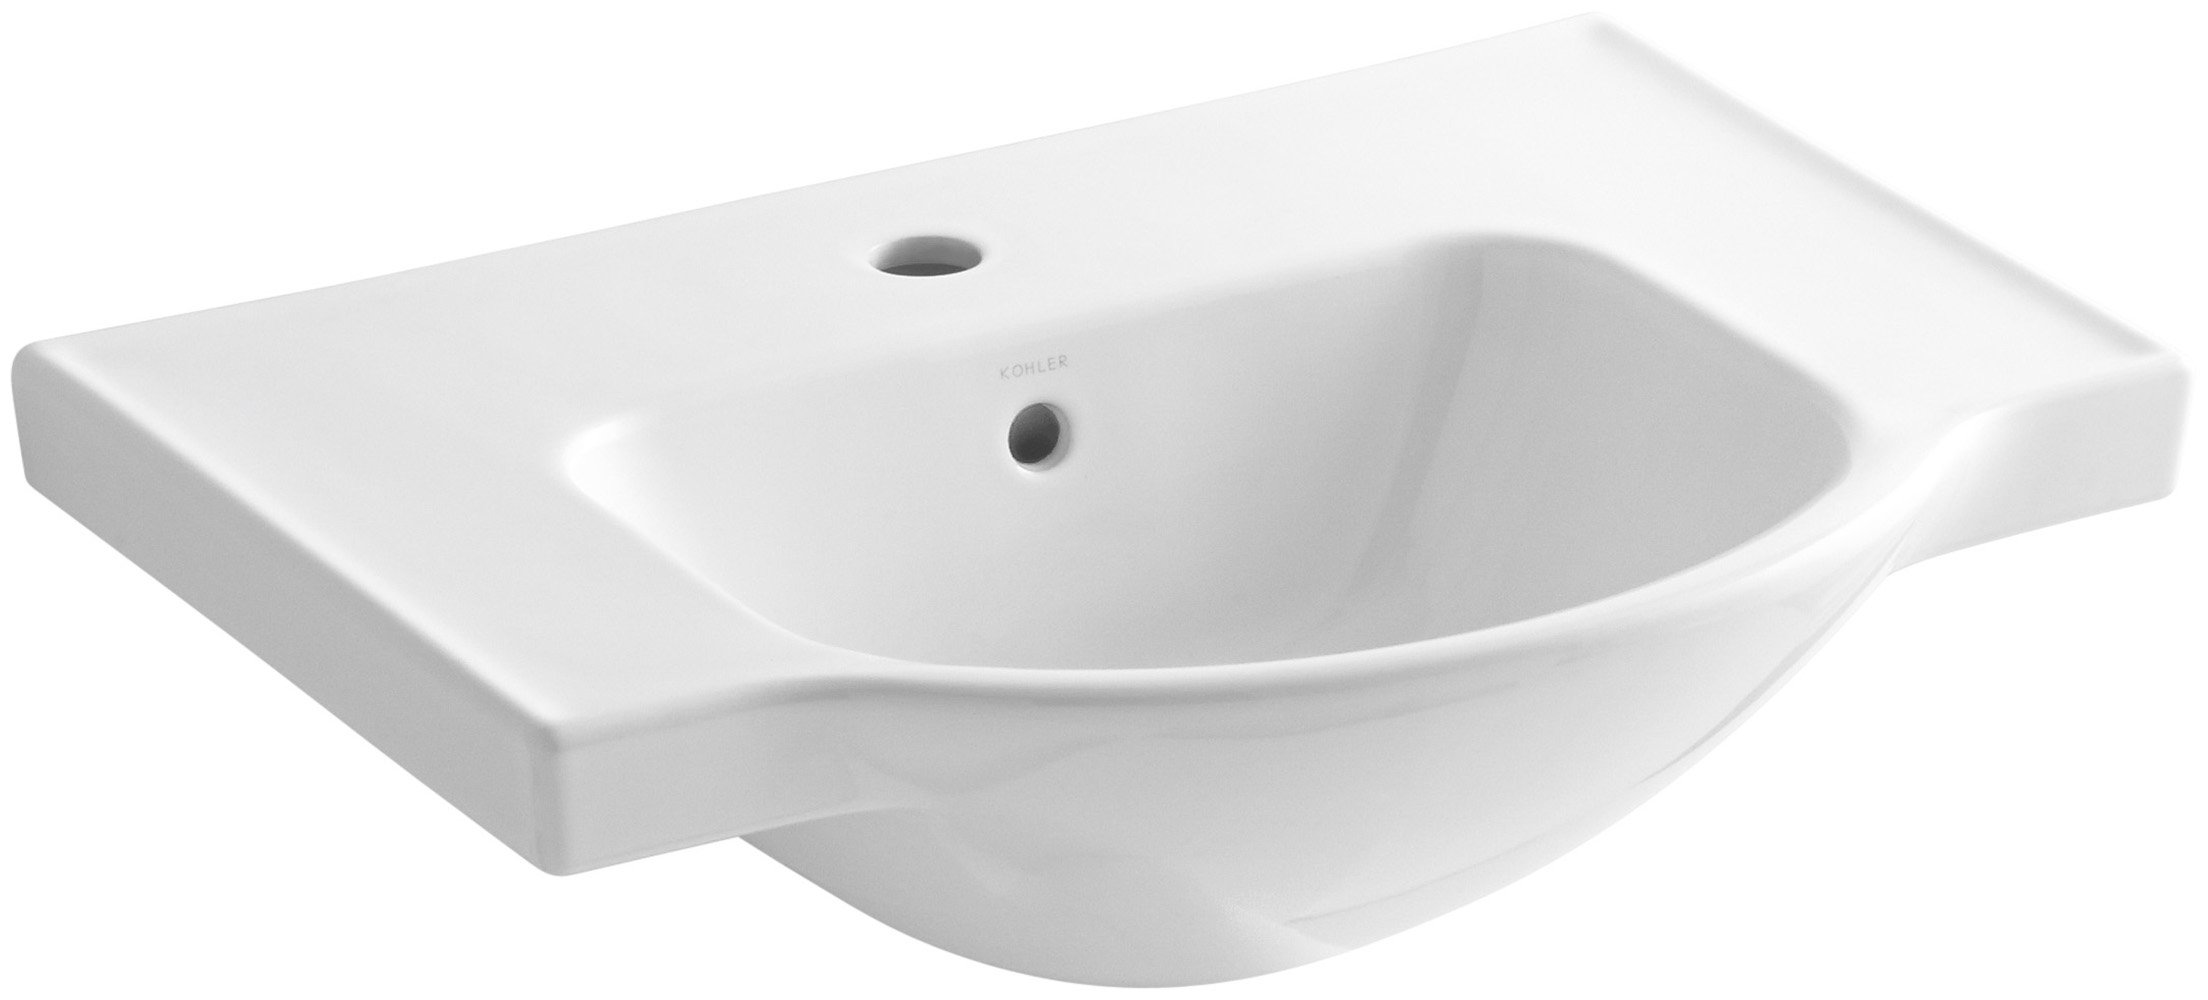 KOHLER K-5248-1-0 Veer Single-Hole Sink Basin, 24-Inch, White